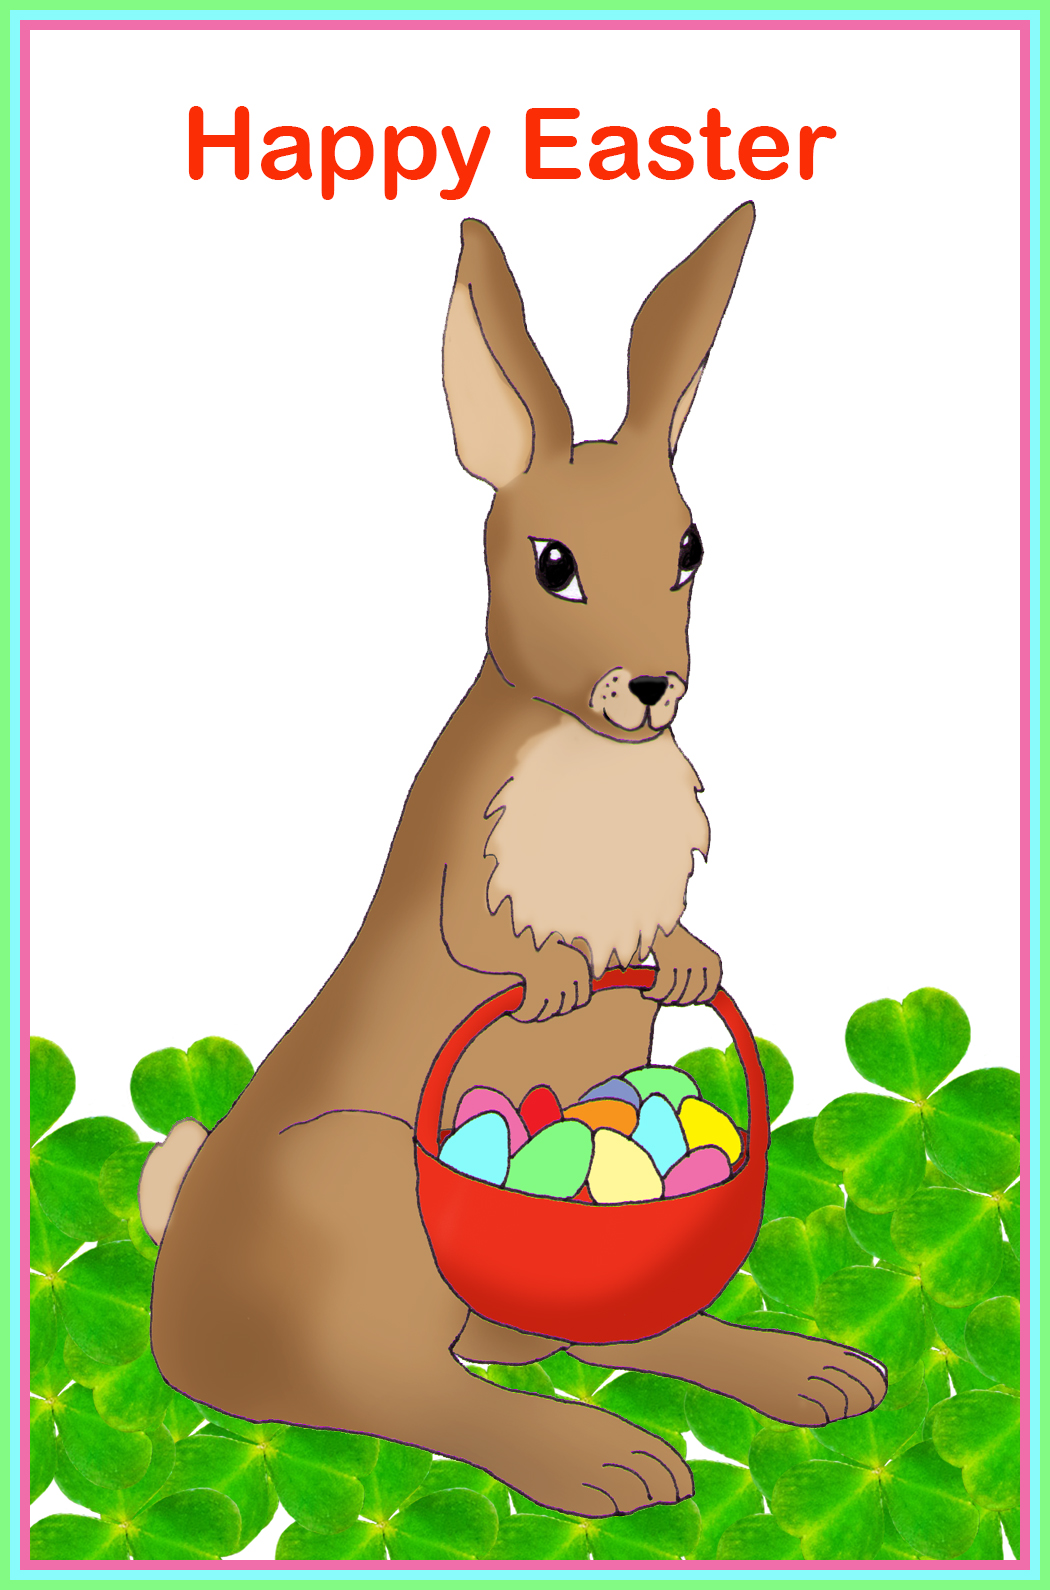 Lucky easter bunny clipart download Free Easter Cards | Free Printable Greeting Cards download